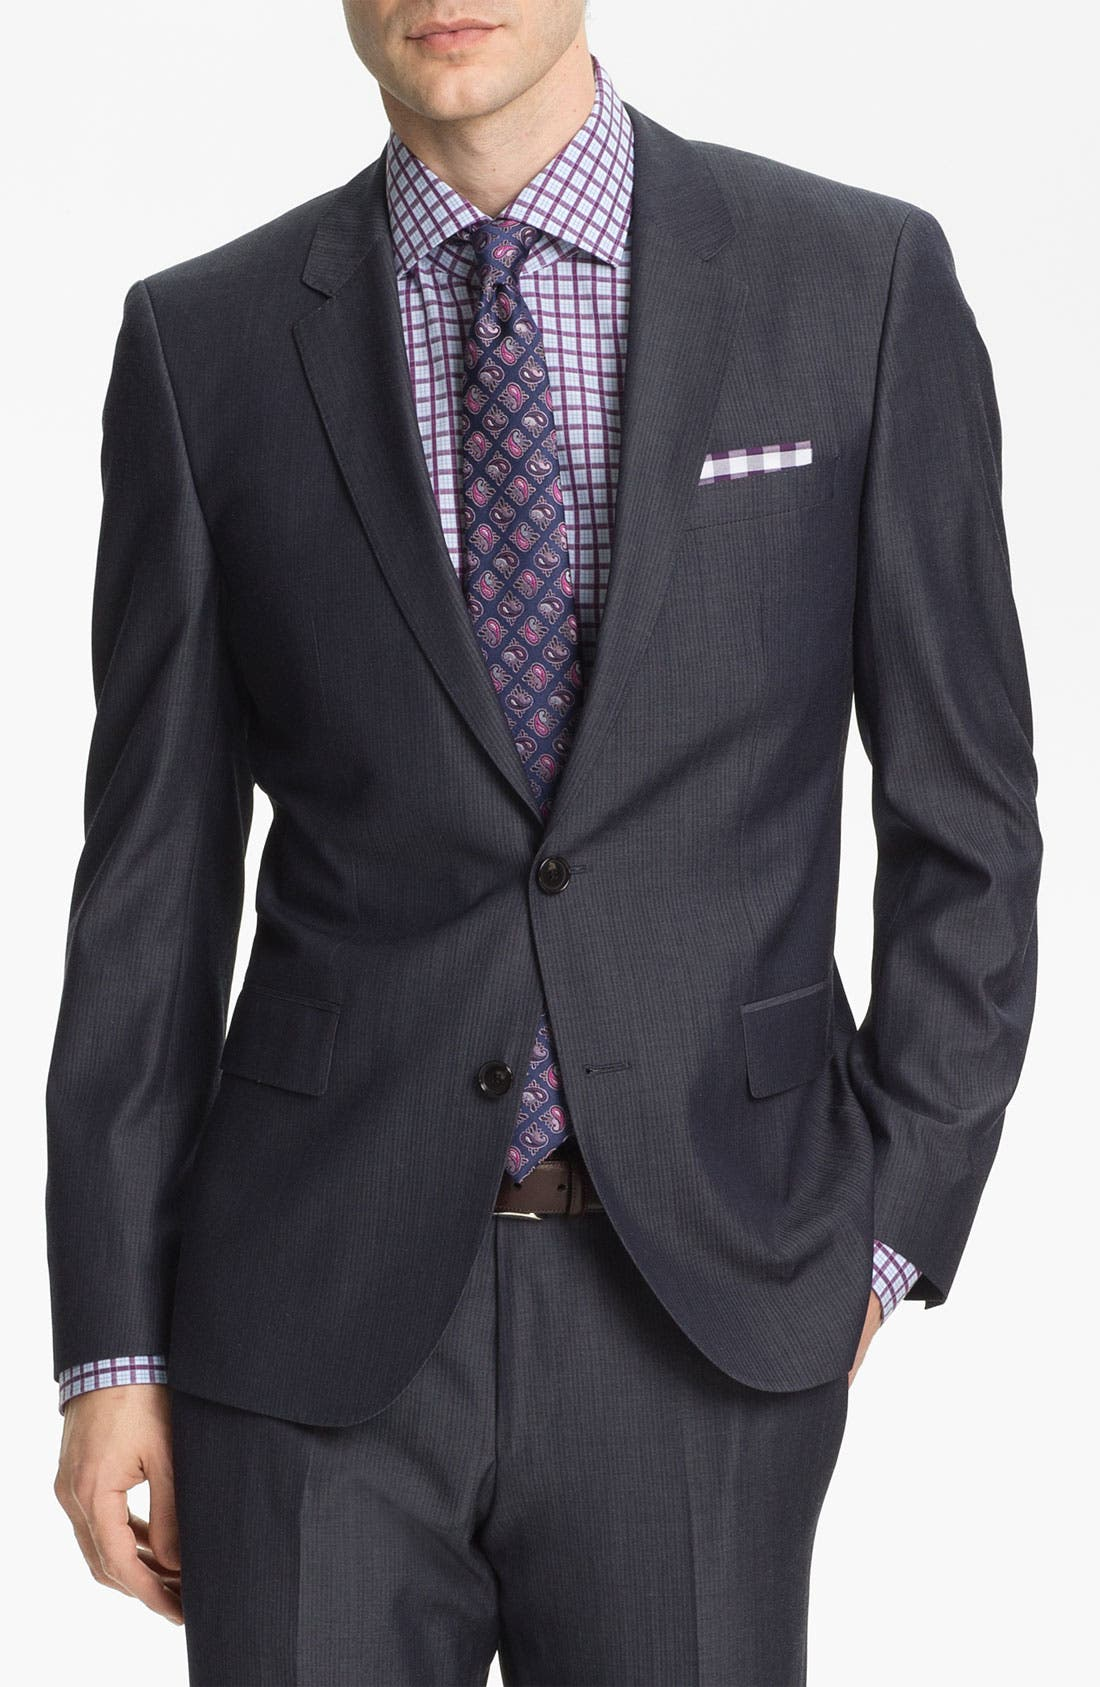 Alternate Image 1 Selected - BOSS Black 'Huge/Genius' Trim Fit Stripe Suit